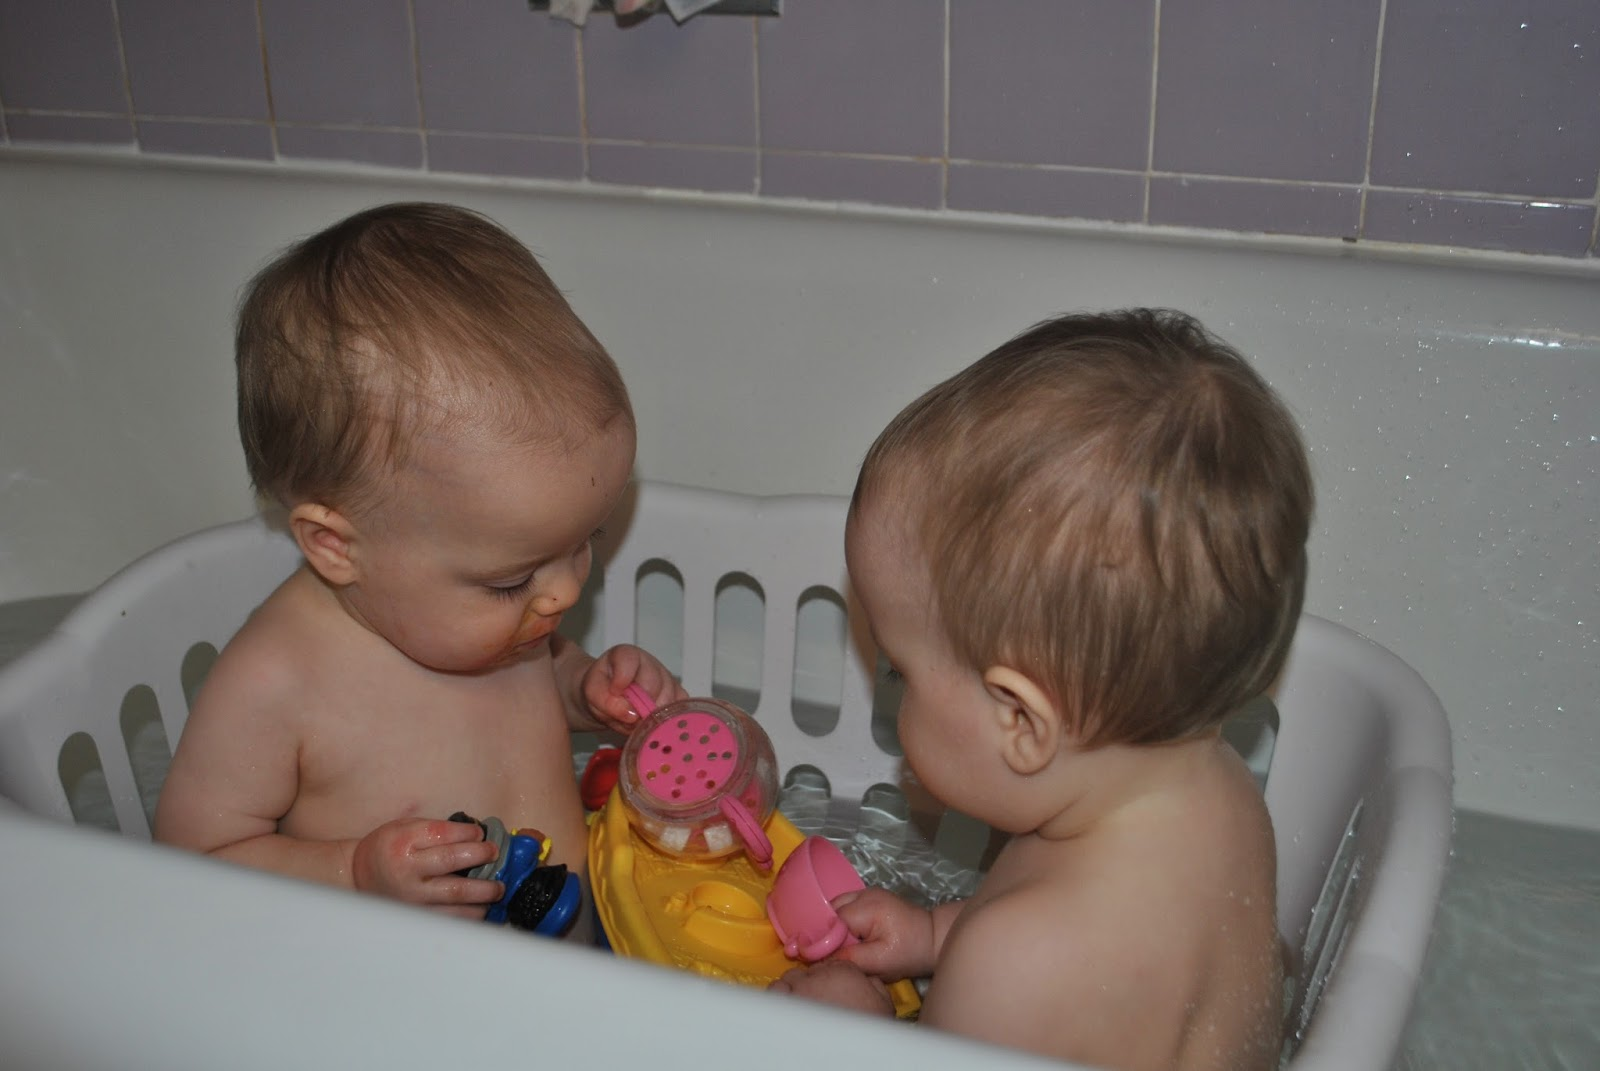 Flack Family of Five: Rub a Dub Dub, two babies in the tub!